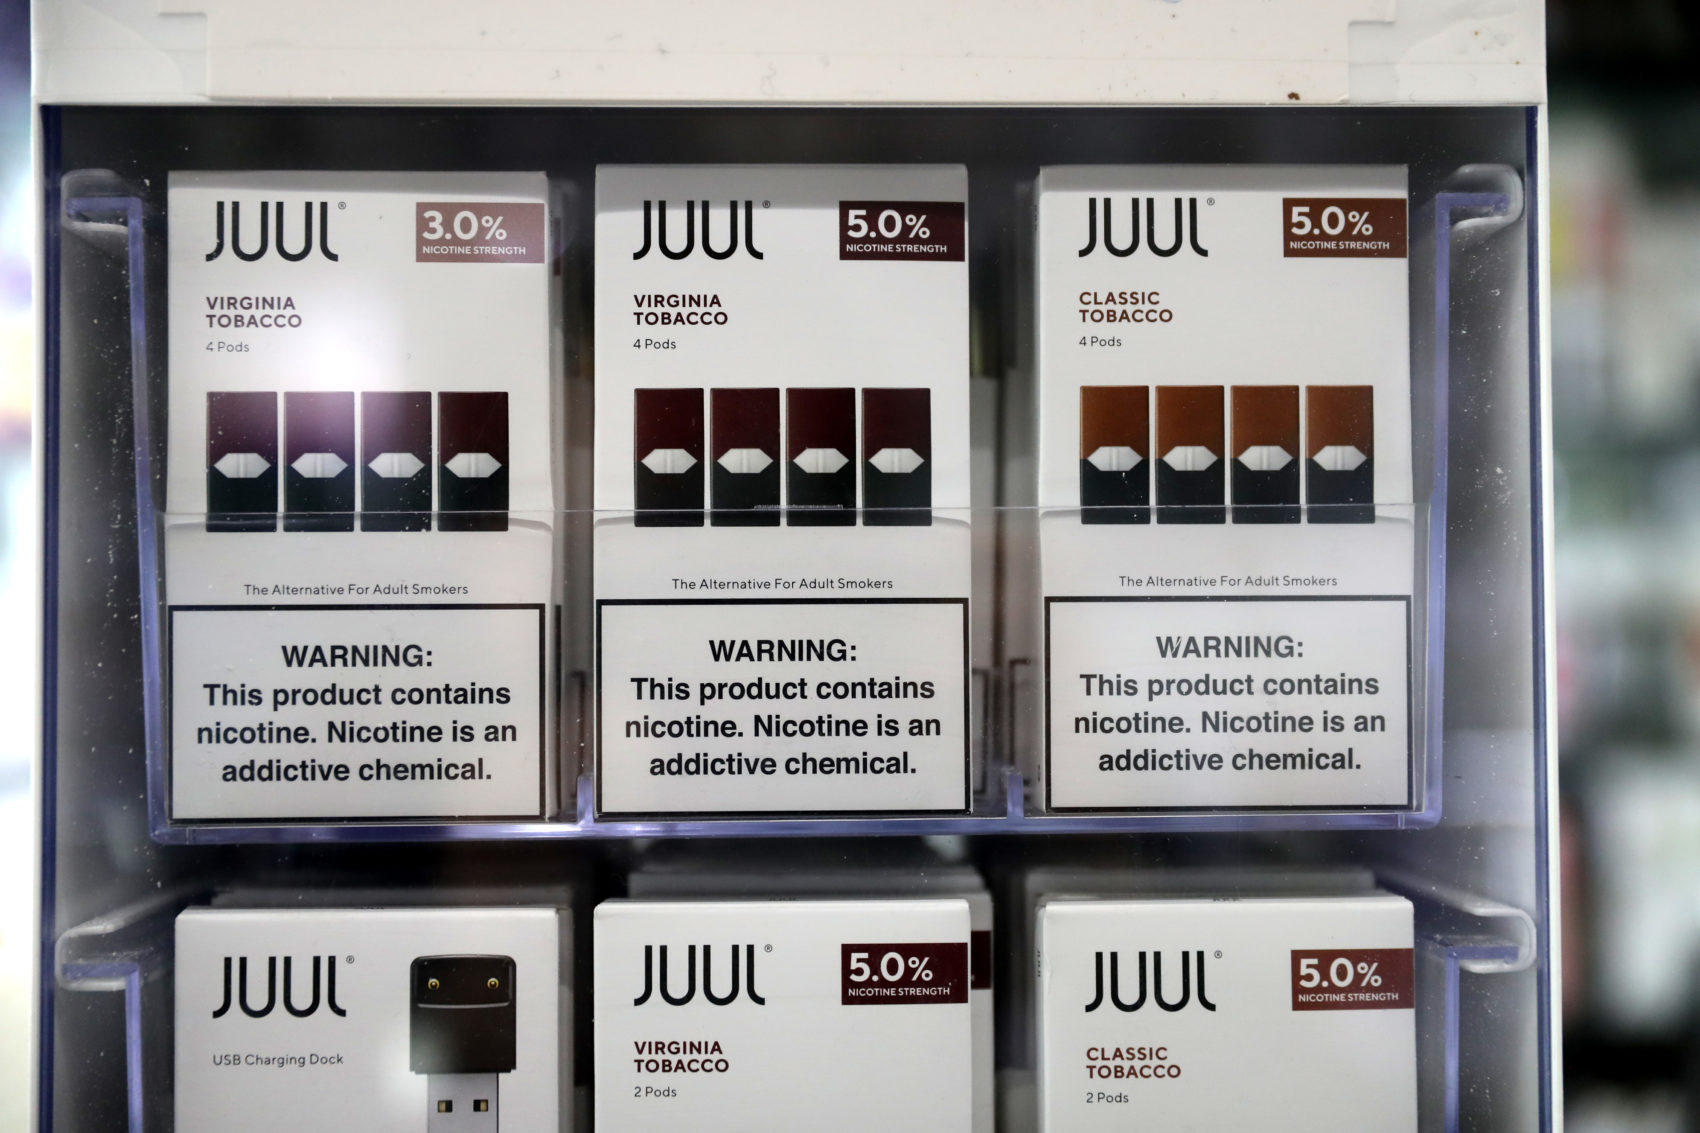 Nicotine From One Juul Pod Is Like Smoking 'A Whole Pack Of Cigarettes,' Doctor Says